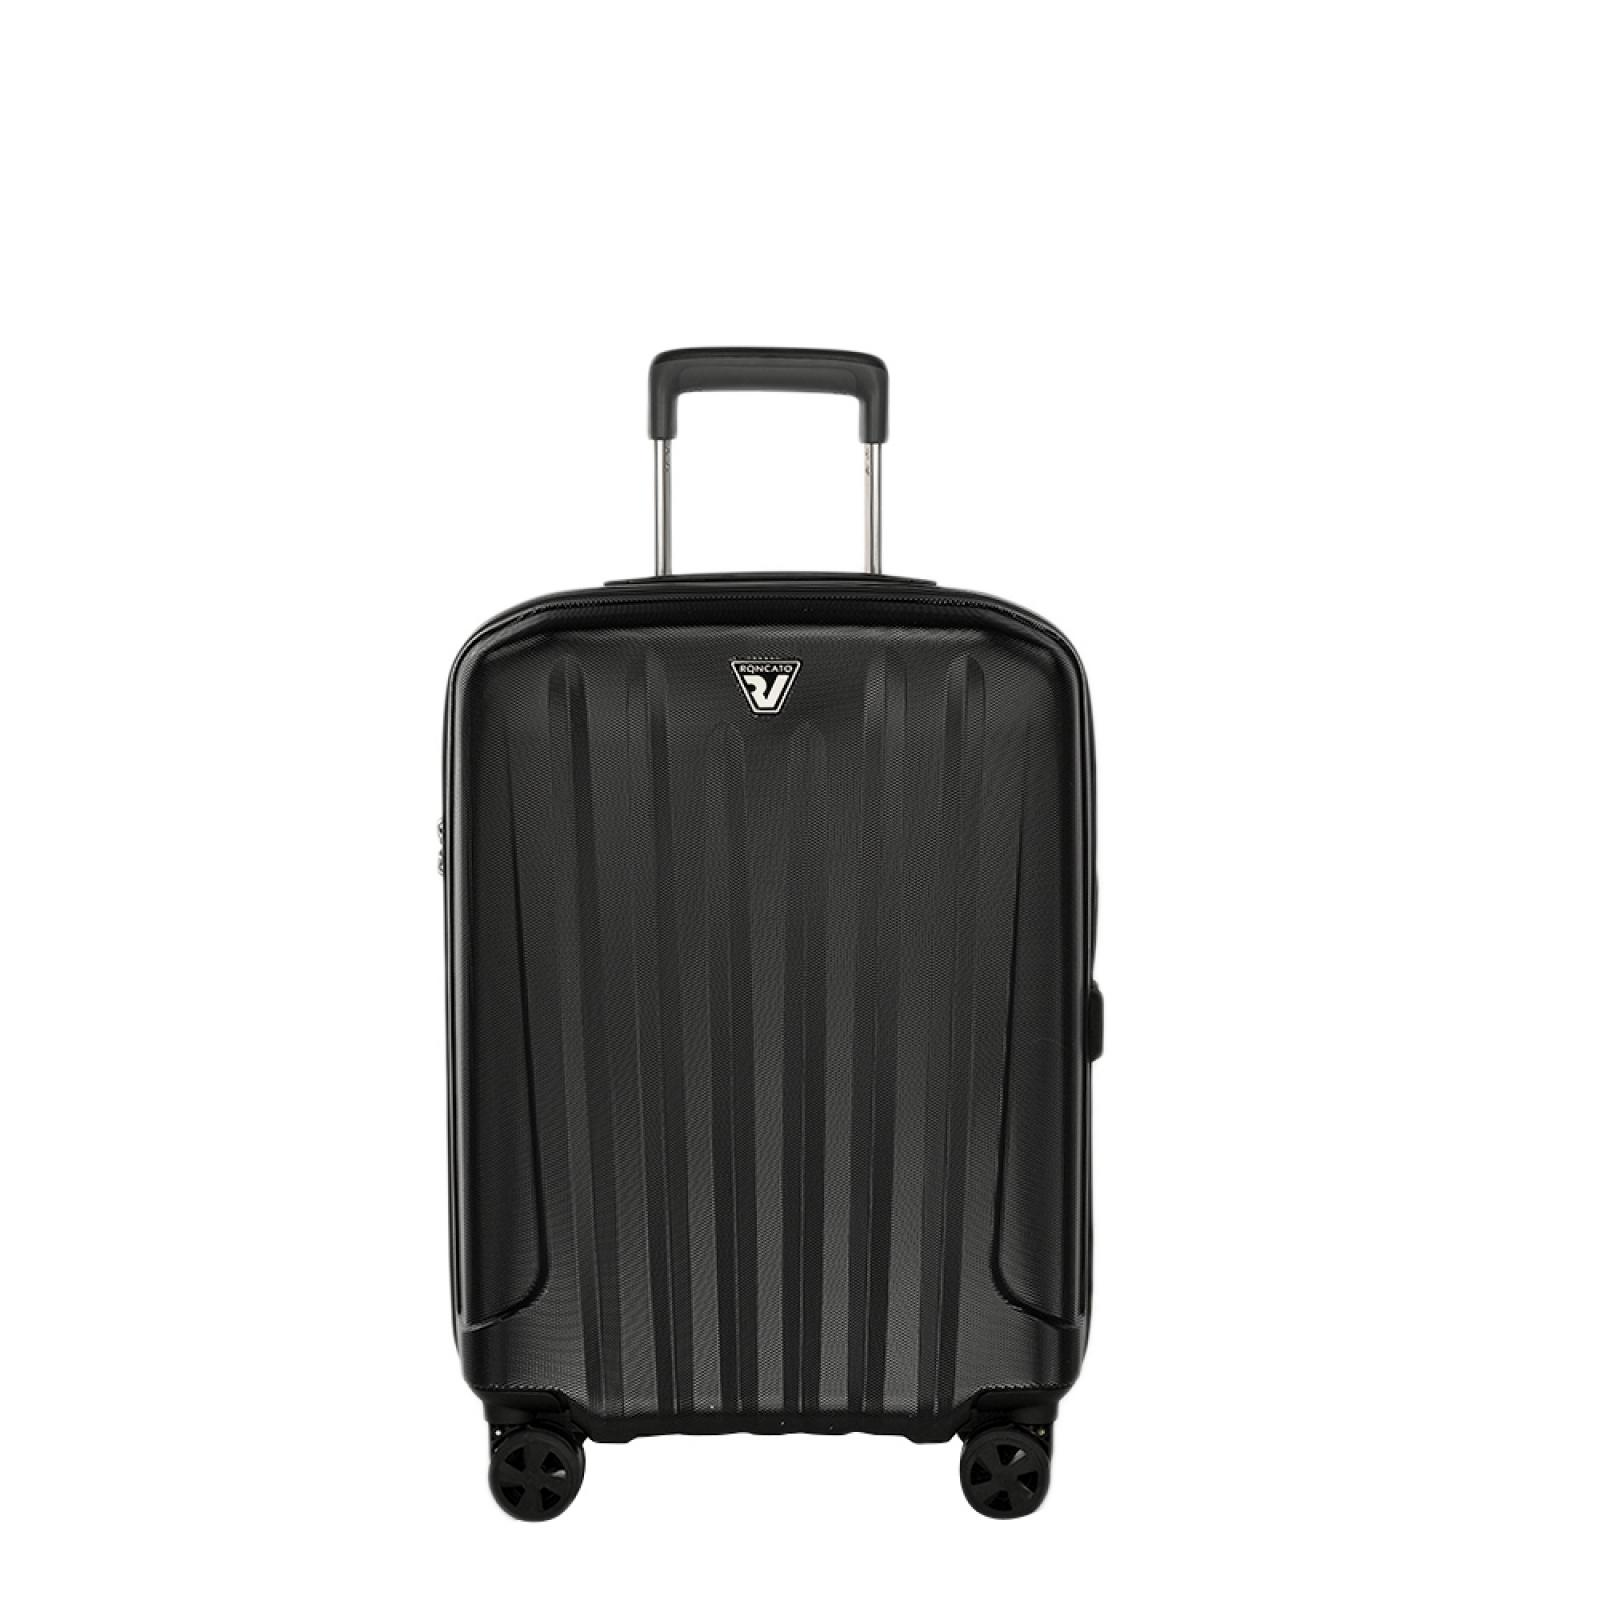 Cabin Case Unica Spinner 55 cm-NERO-UN